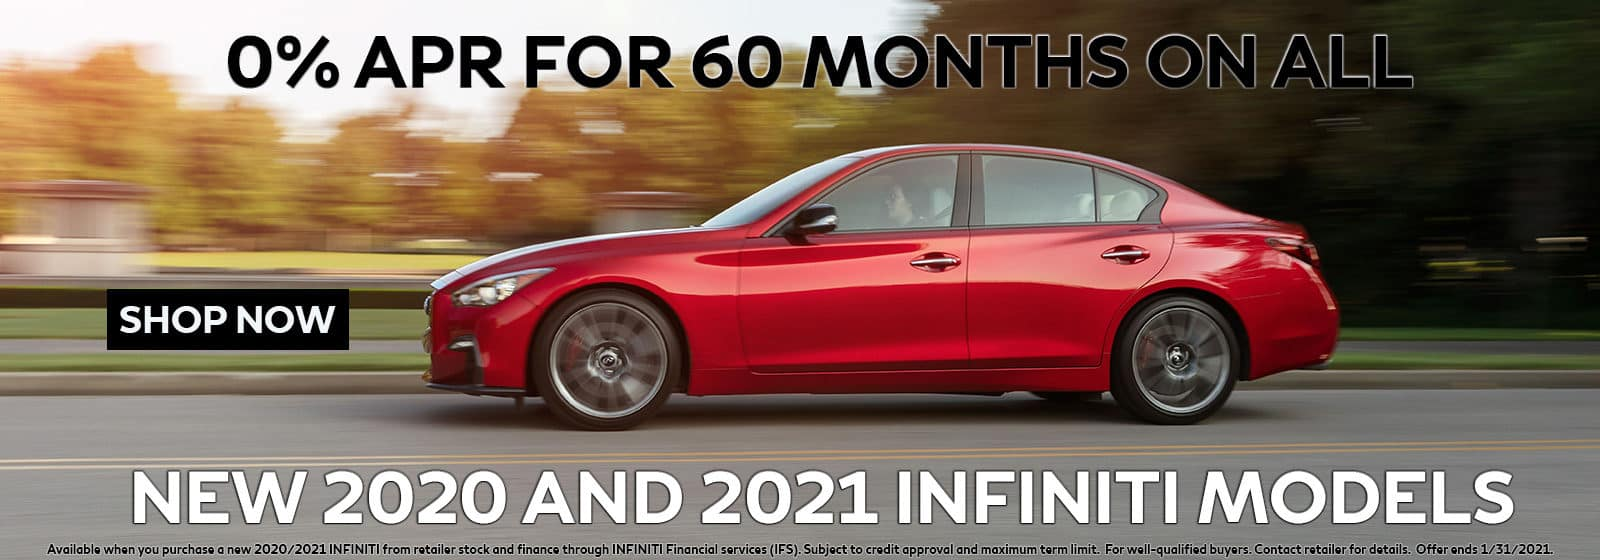 0% for 60 Months on New 2020/2021 INFINITI